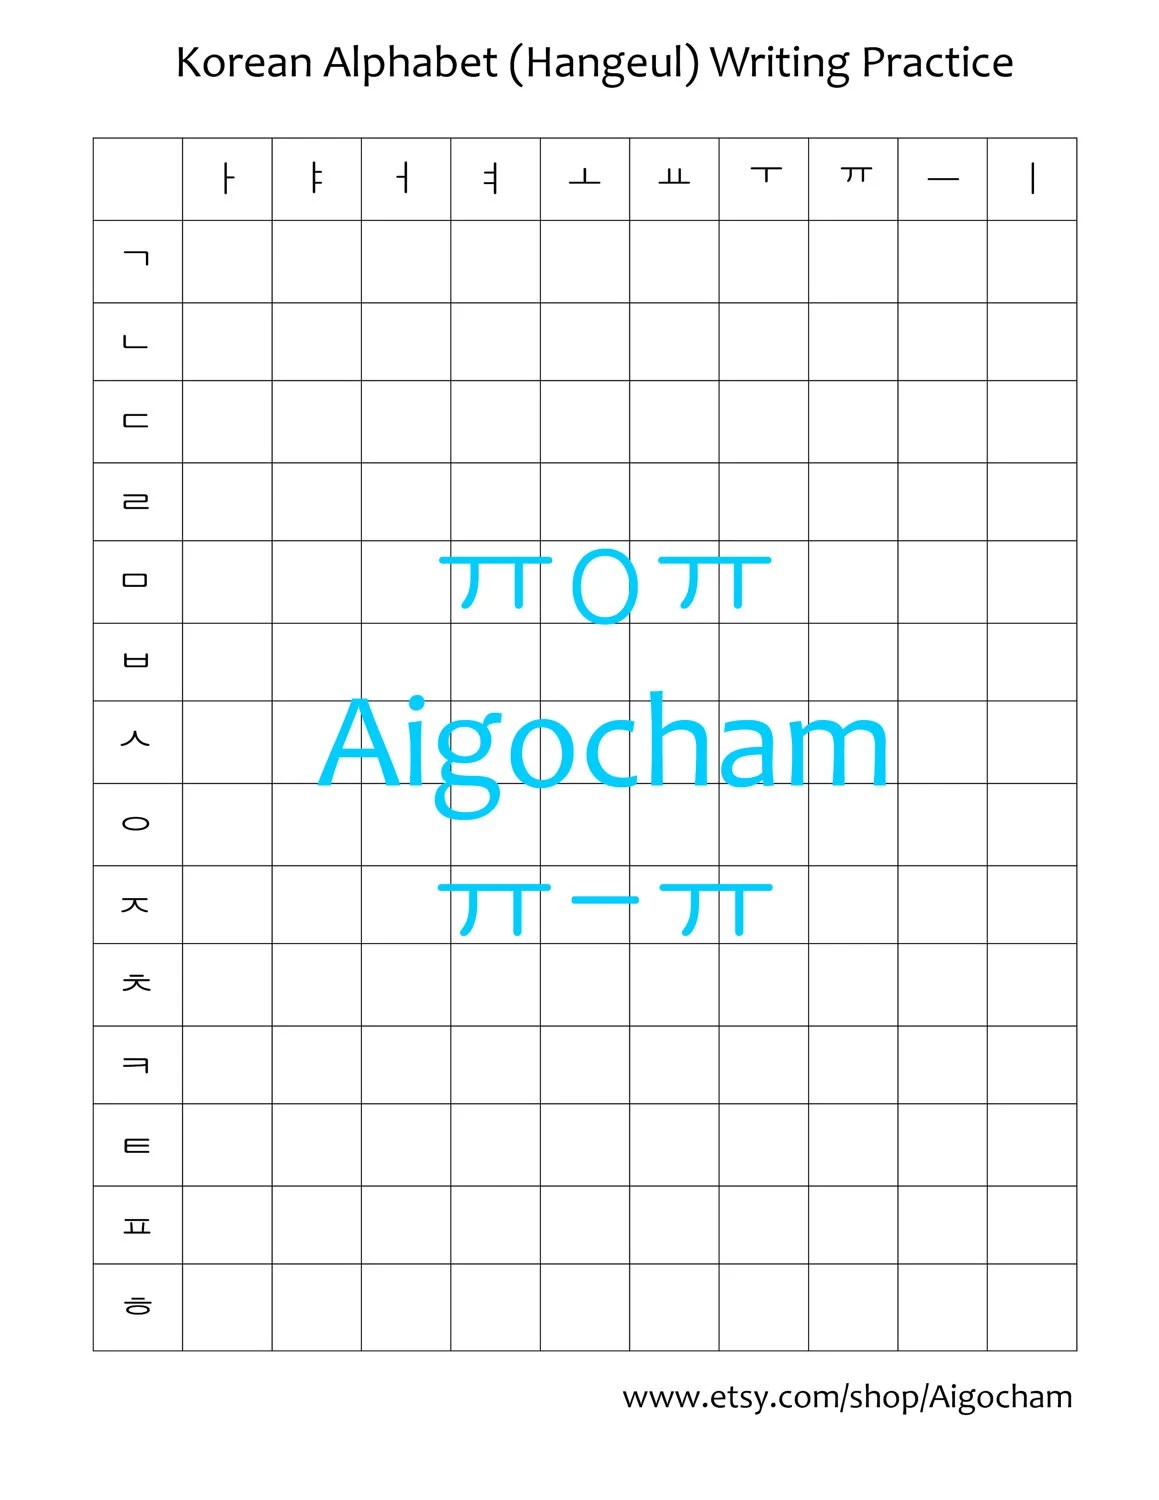 Korean Alphabet Writing Practice Worksheet 1 By Aigocham On Etsy